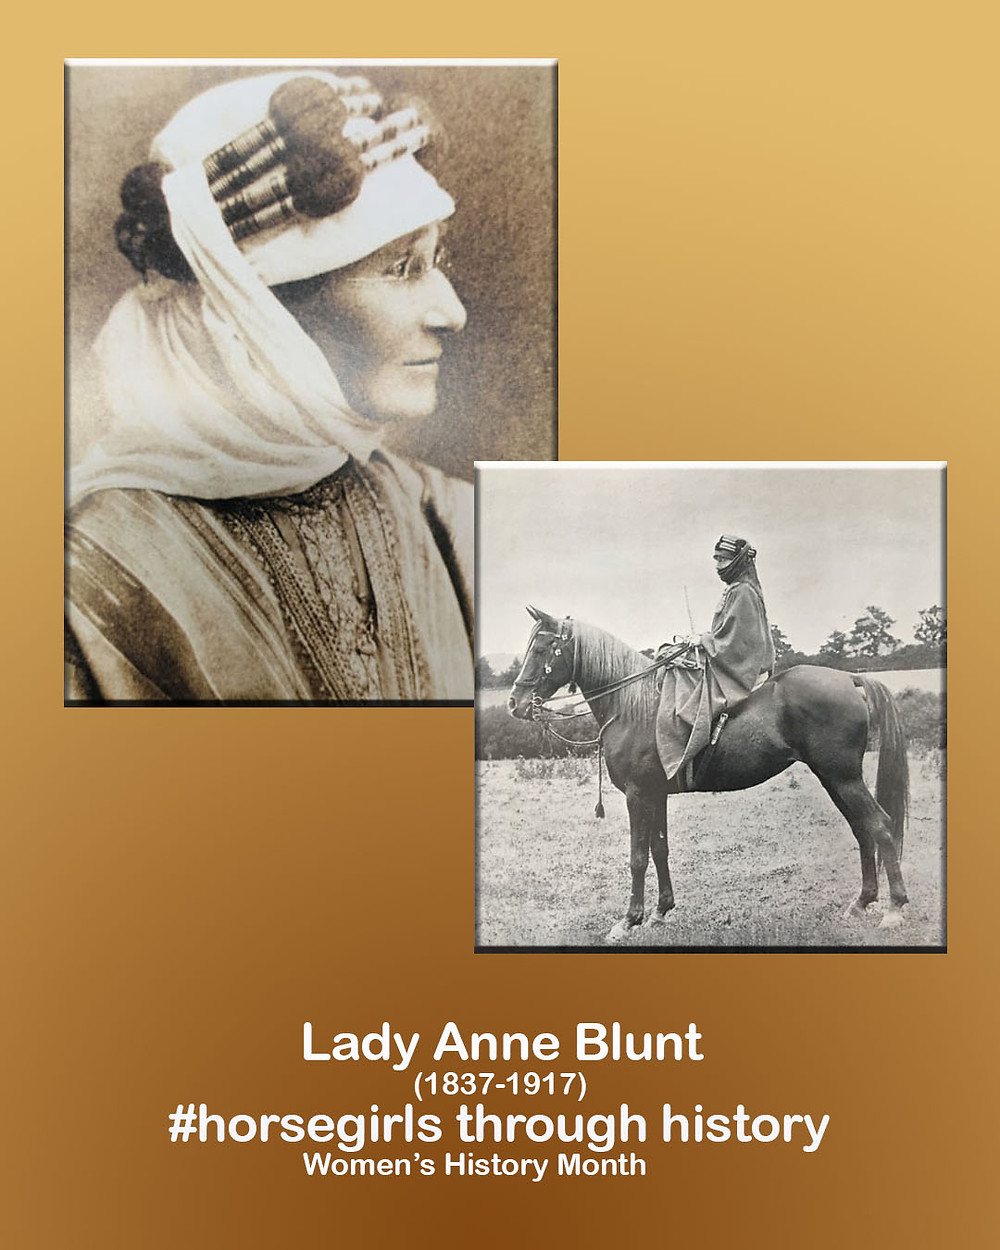 Lady Anne Blunt, ahead of her time in defying conventions